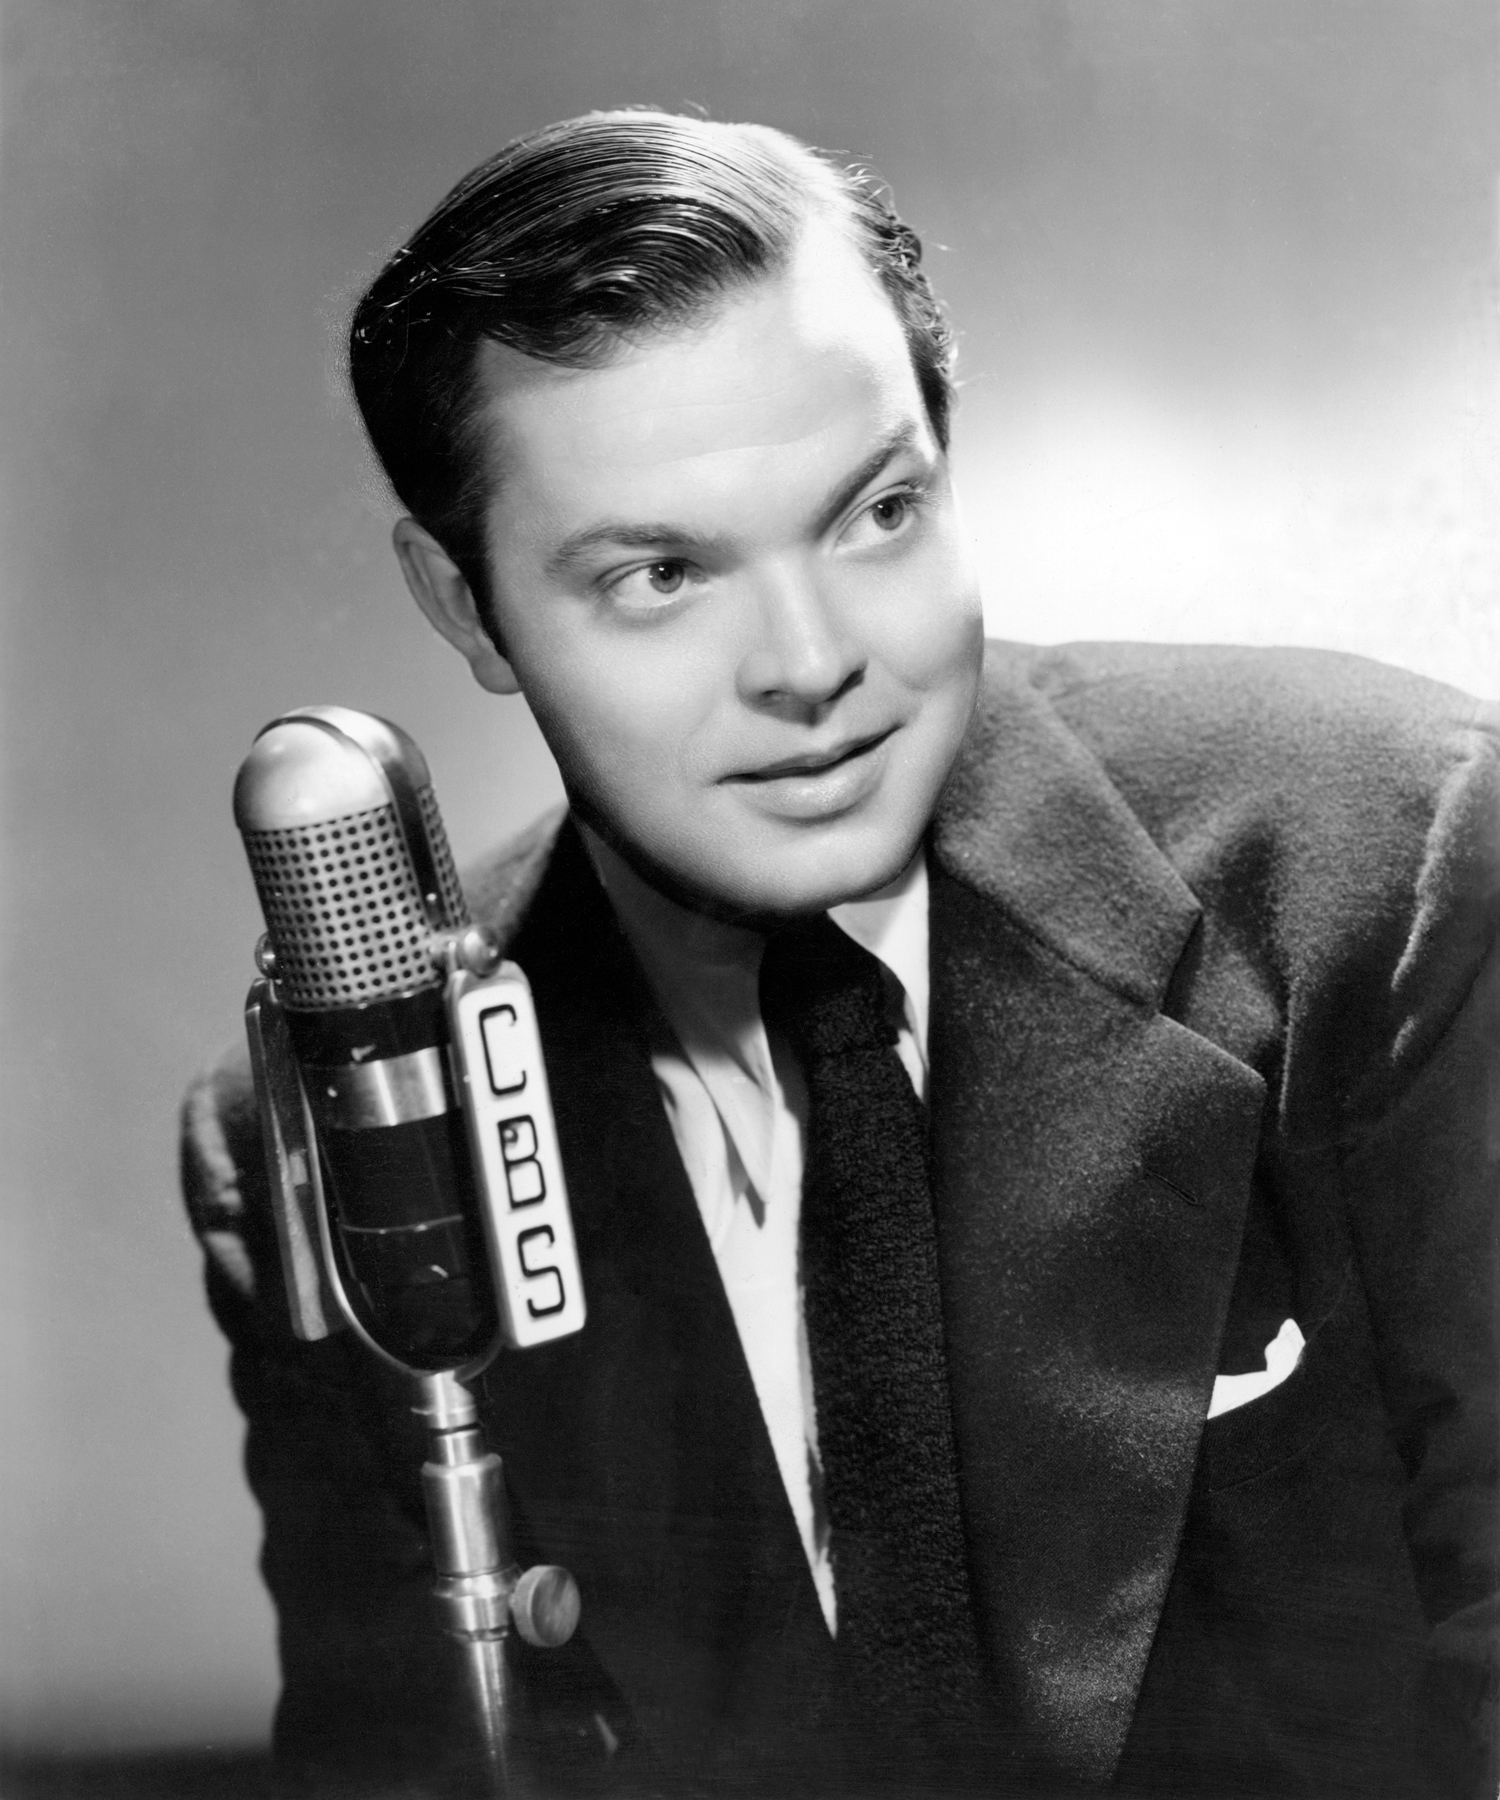 Orson Welles Orson Welles Show radio Wikipedia the free encyclopedia